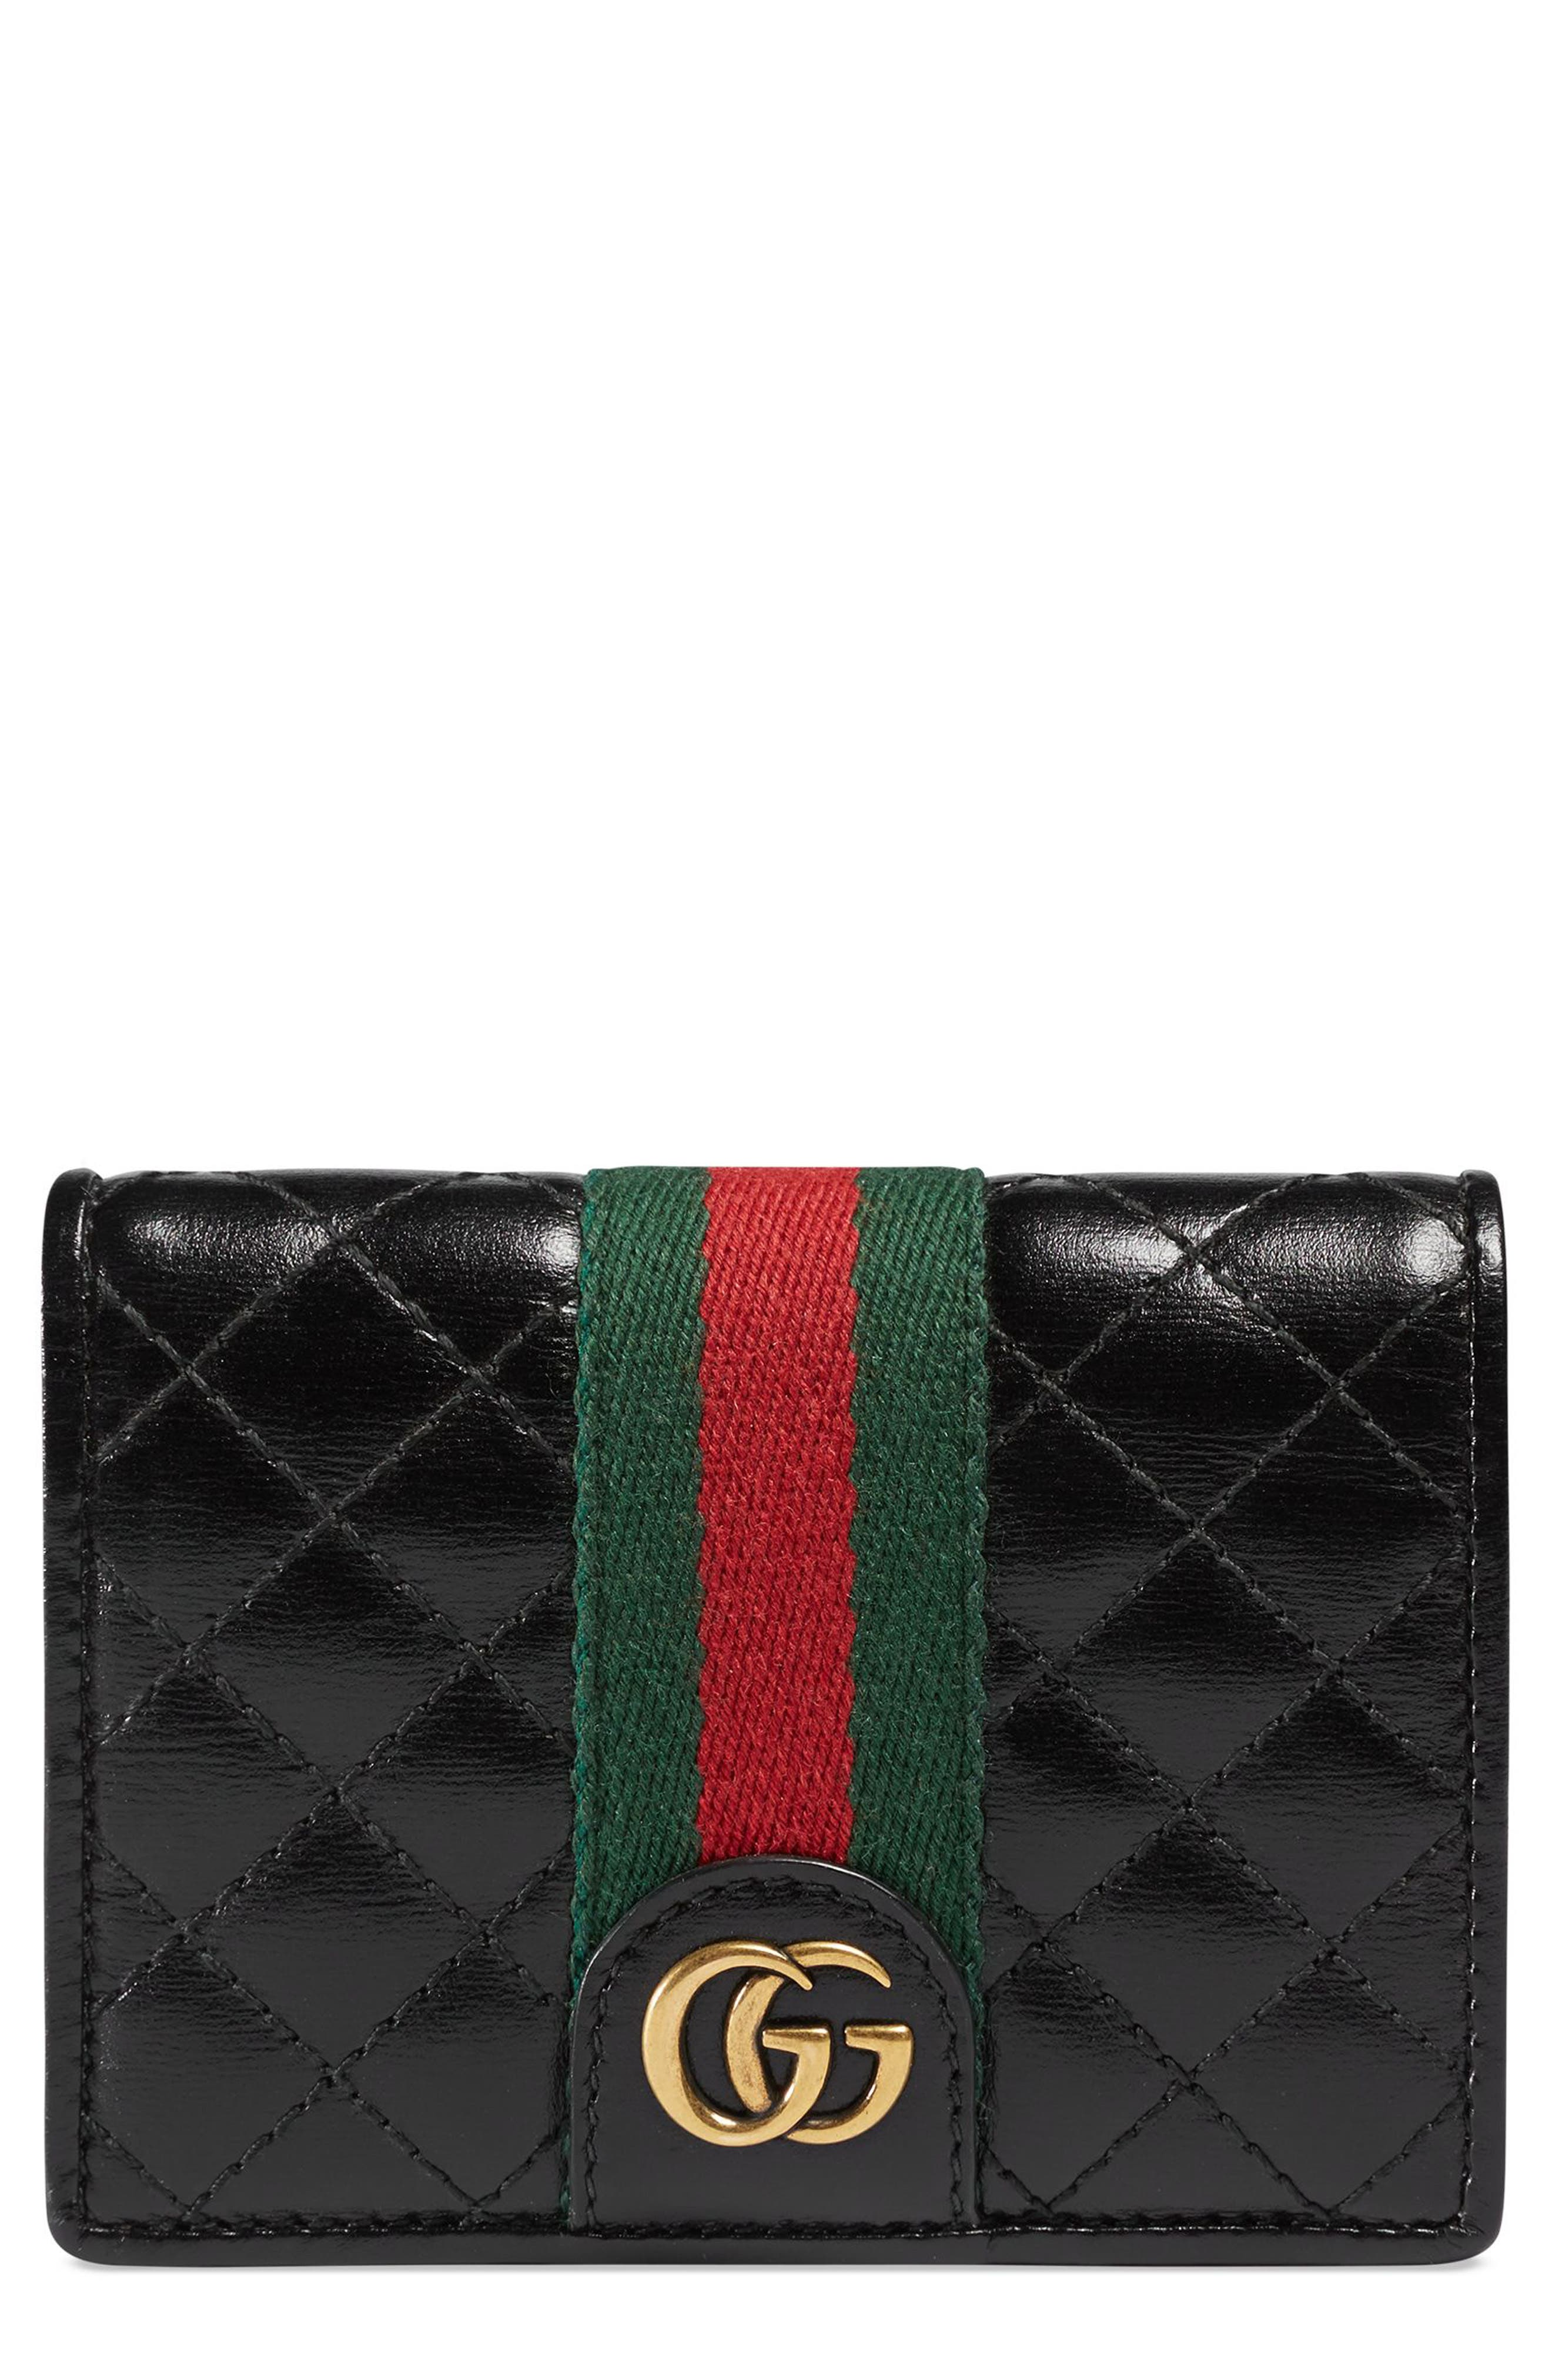 Quilted Leather Card Case,                         Main,                         color, NERO/ VERT/ RED